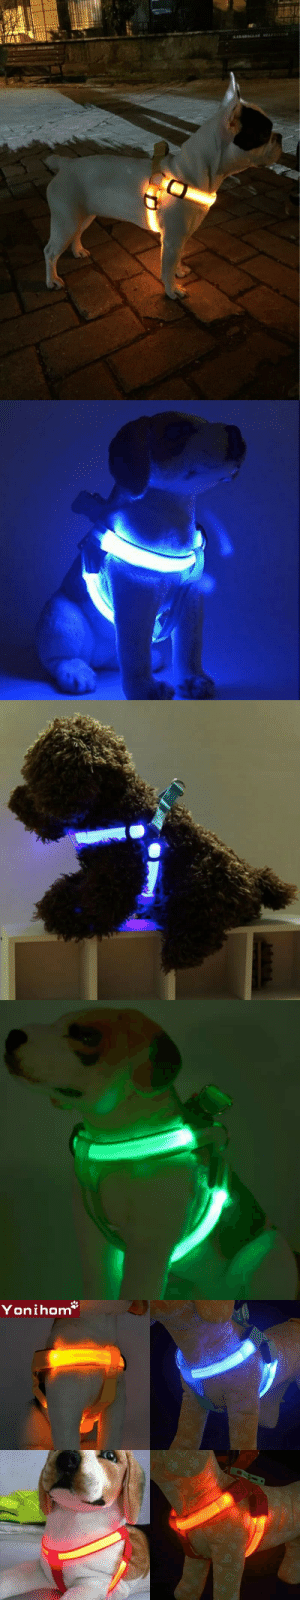 """awesomage:   The LED Harness enables you to locate your dog at night so be easily seen from a great distance, keeping it safe from night traffic accidents. SPECIAL DISCOUNT OF 30% OFF PLUS FREE SHIPPING WITH COUPON CODE """"CUDDLING"""" For every sale made, a rescue dog is fed!   https://www.doggiemon.com/products/led-harness : A1KAMAGLAR RELERVS  BILIRALLAN JOI   Yonihom  E3  X1  EX awesomage:   The LED Harness enables you to locate your dog at night so be easily seen from a great distance, keeping it safe from night traffic accidents. SPECIAL DISCOUNT OF 30% OFF PLUS FREE SHIPPING WITH COUPON CODE """"CUDDLING"""" For every sale made, a rescue dog is fed!   https://www.doggiemon.com/products/led-harness"""